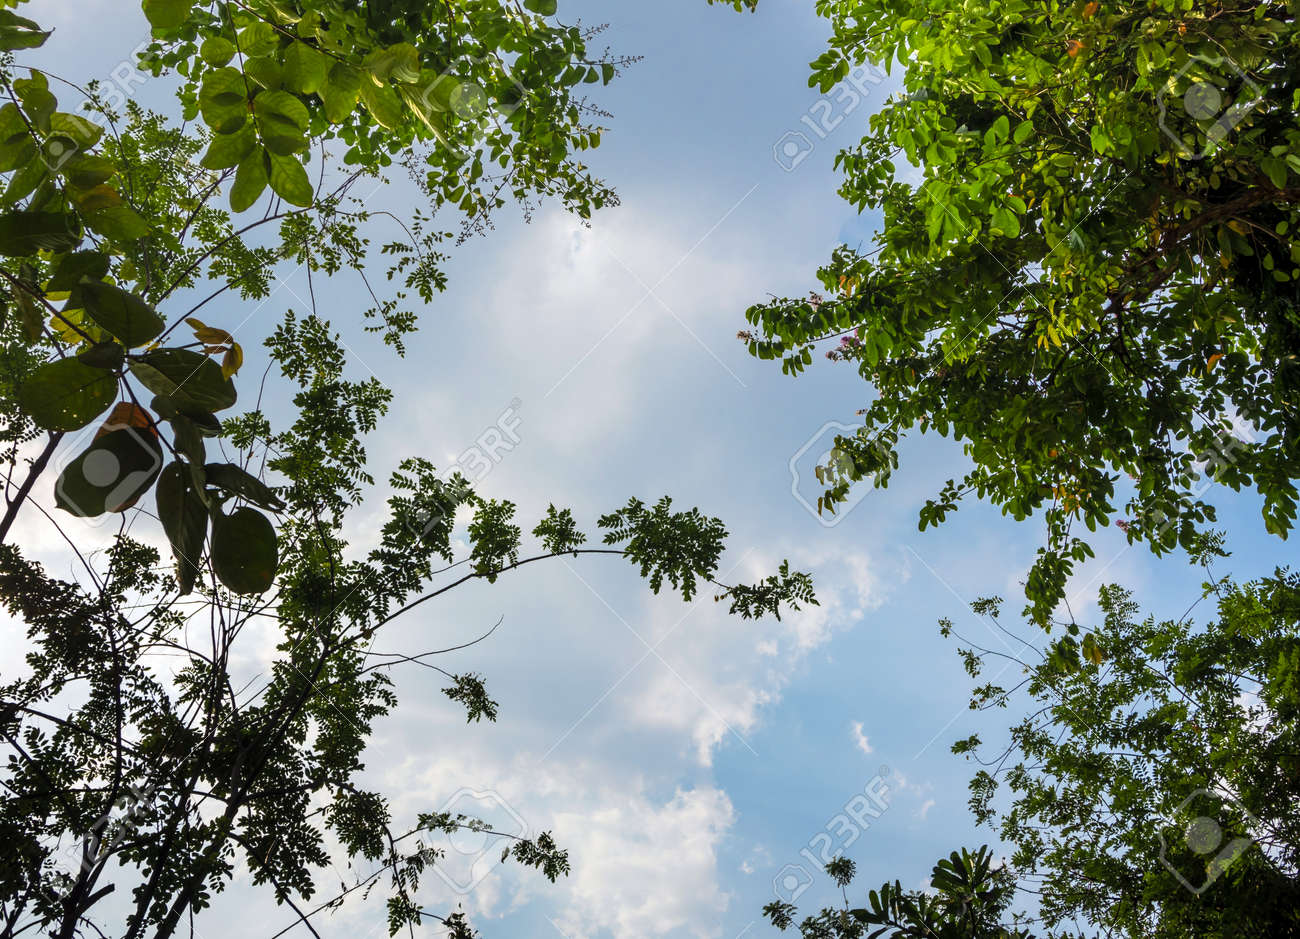 A Low Vantage Point to the Blue sky through the leaves of tree , Looking up to the sky - 172429613